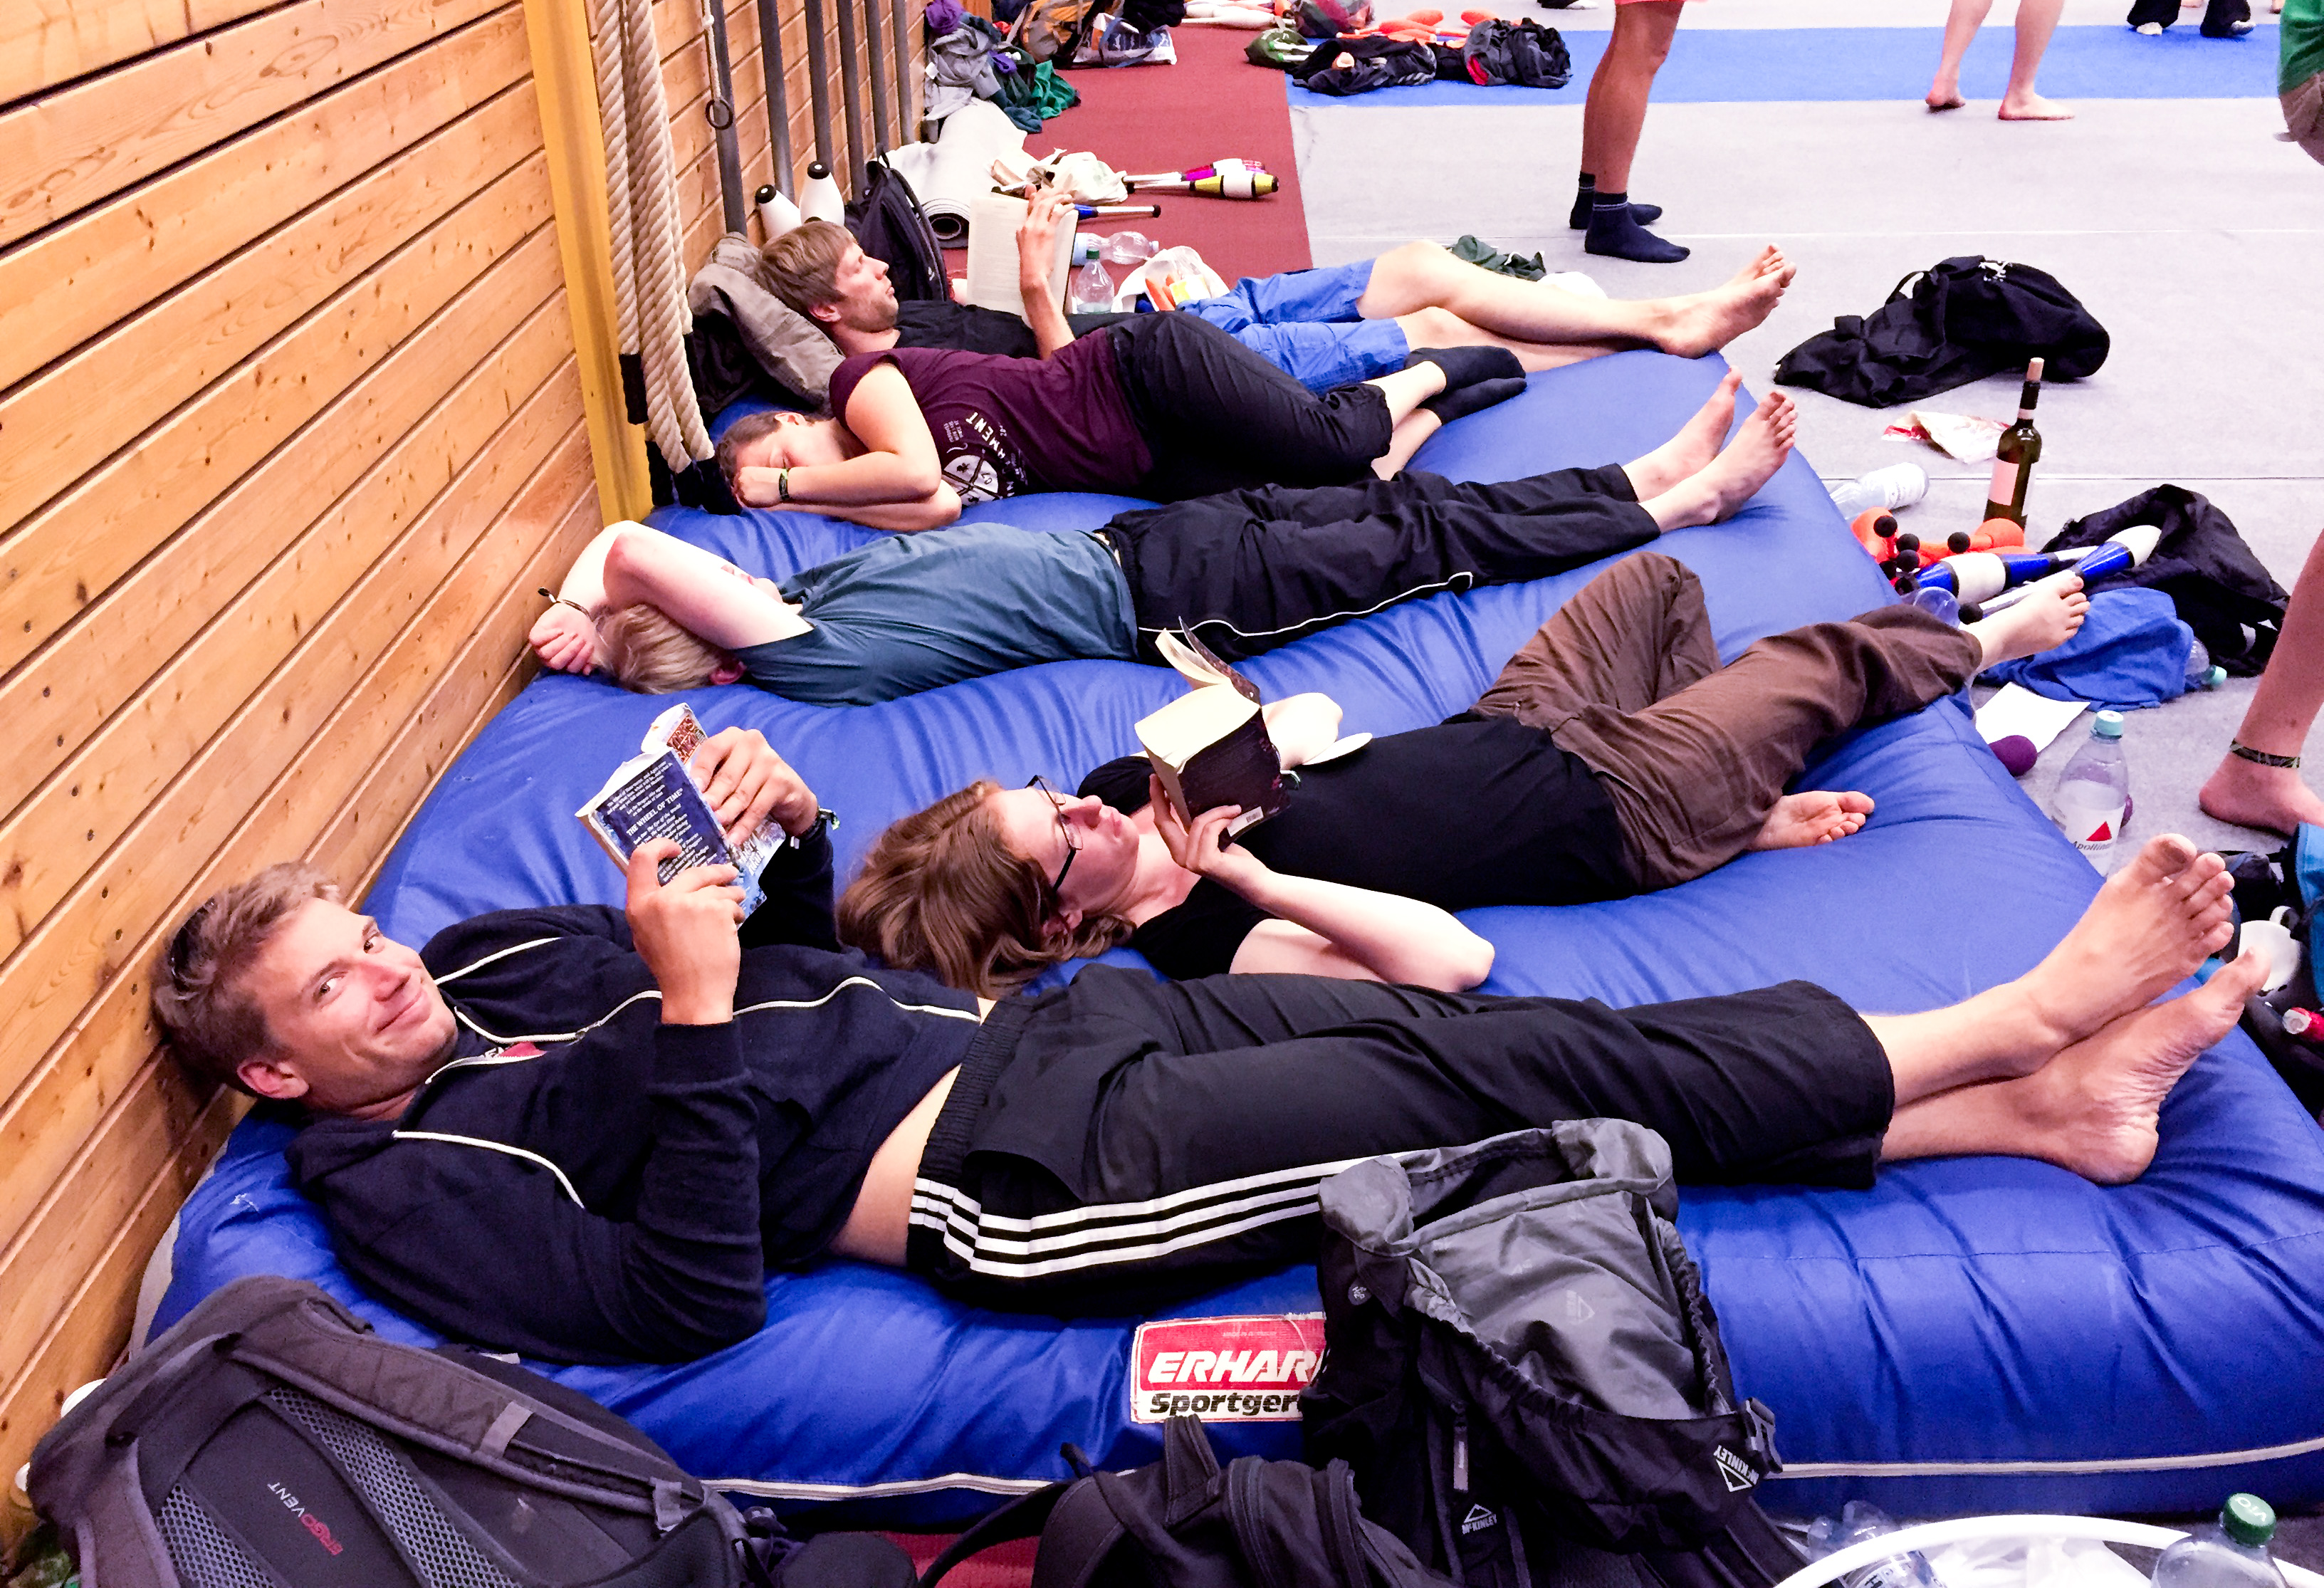 EJC 2015 Bruneck - Sunday August 2nd: Gym 3 Book Club.